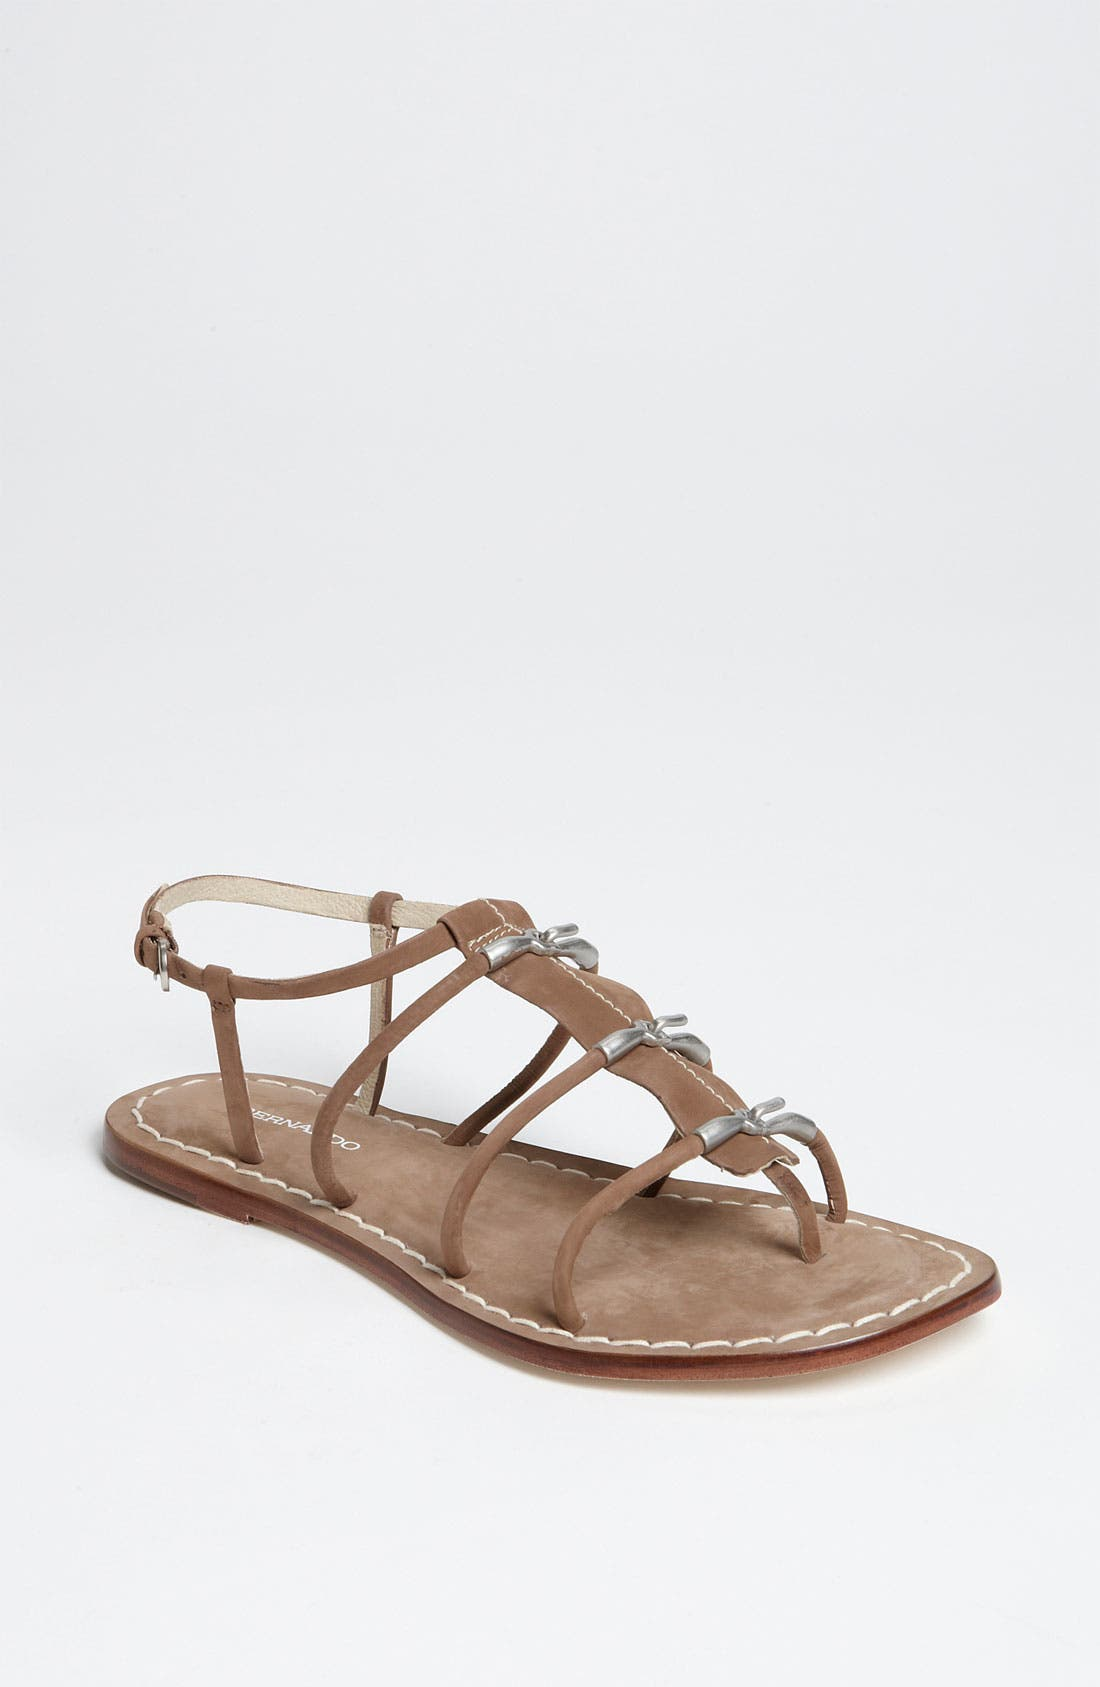 Alternate Image 1 Selected - Bernardo Footwear Maia Sandal